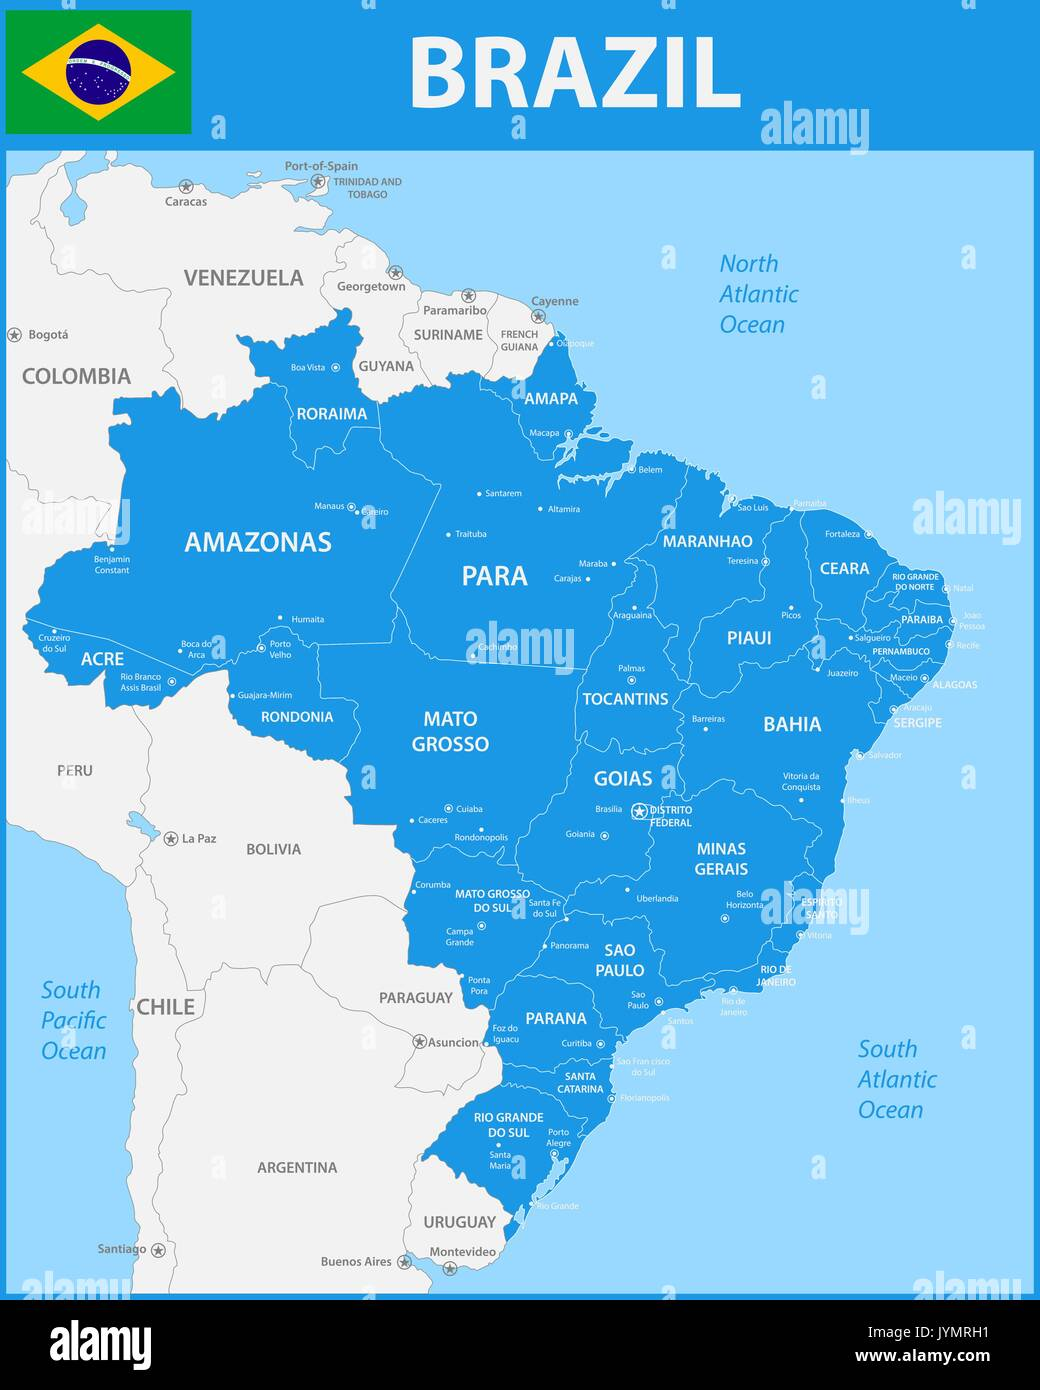 The detailed map of the Brazil with regions or states and cities ...